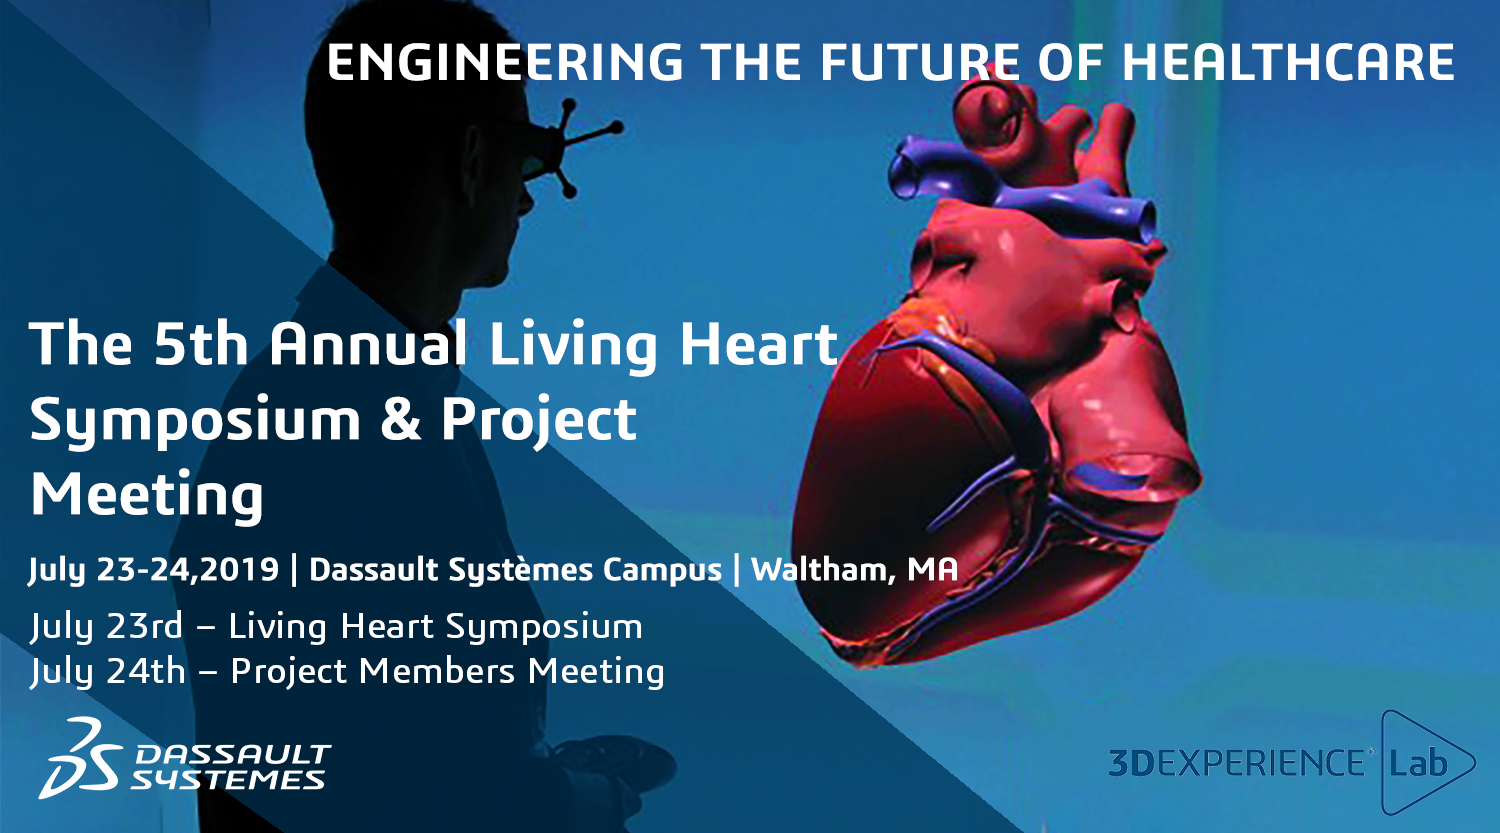 The Living Heart Symposium & Project Meeting